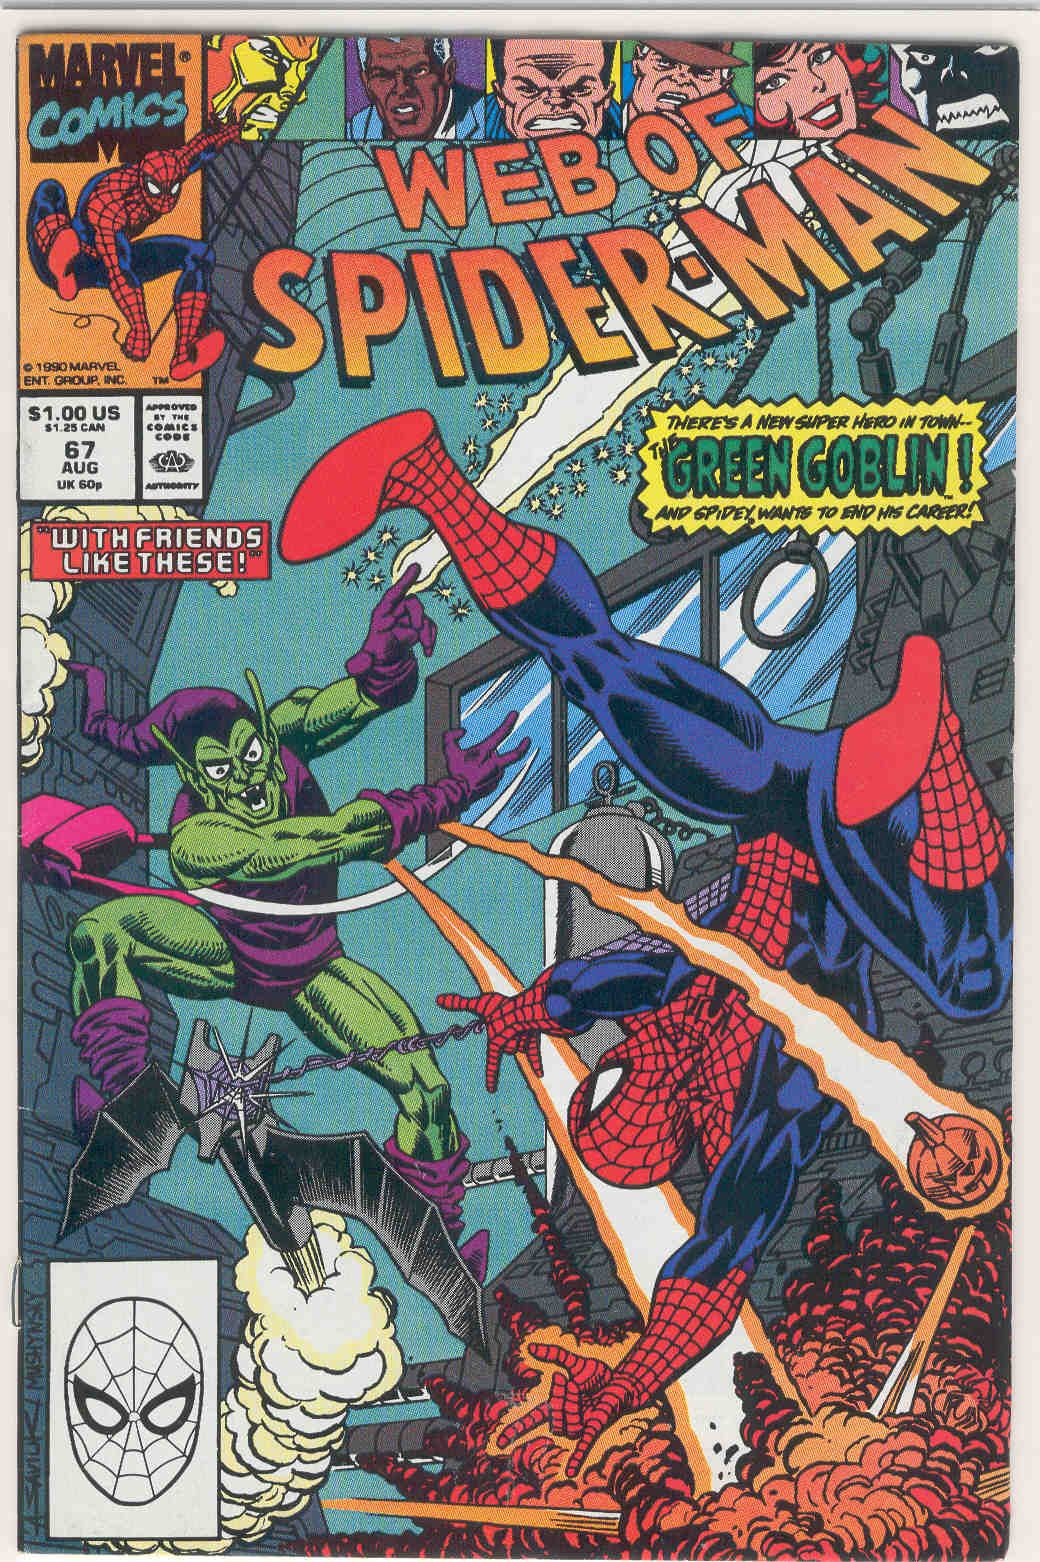 Title web of spiderman year publisher marvel number